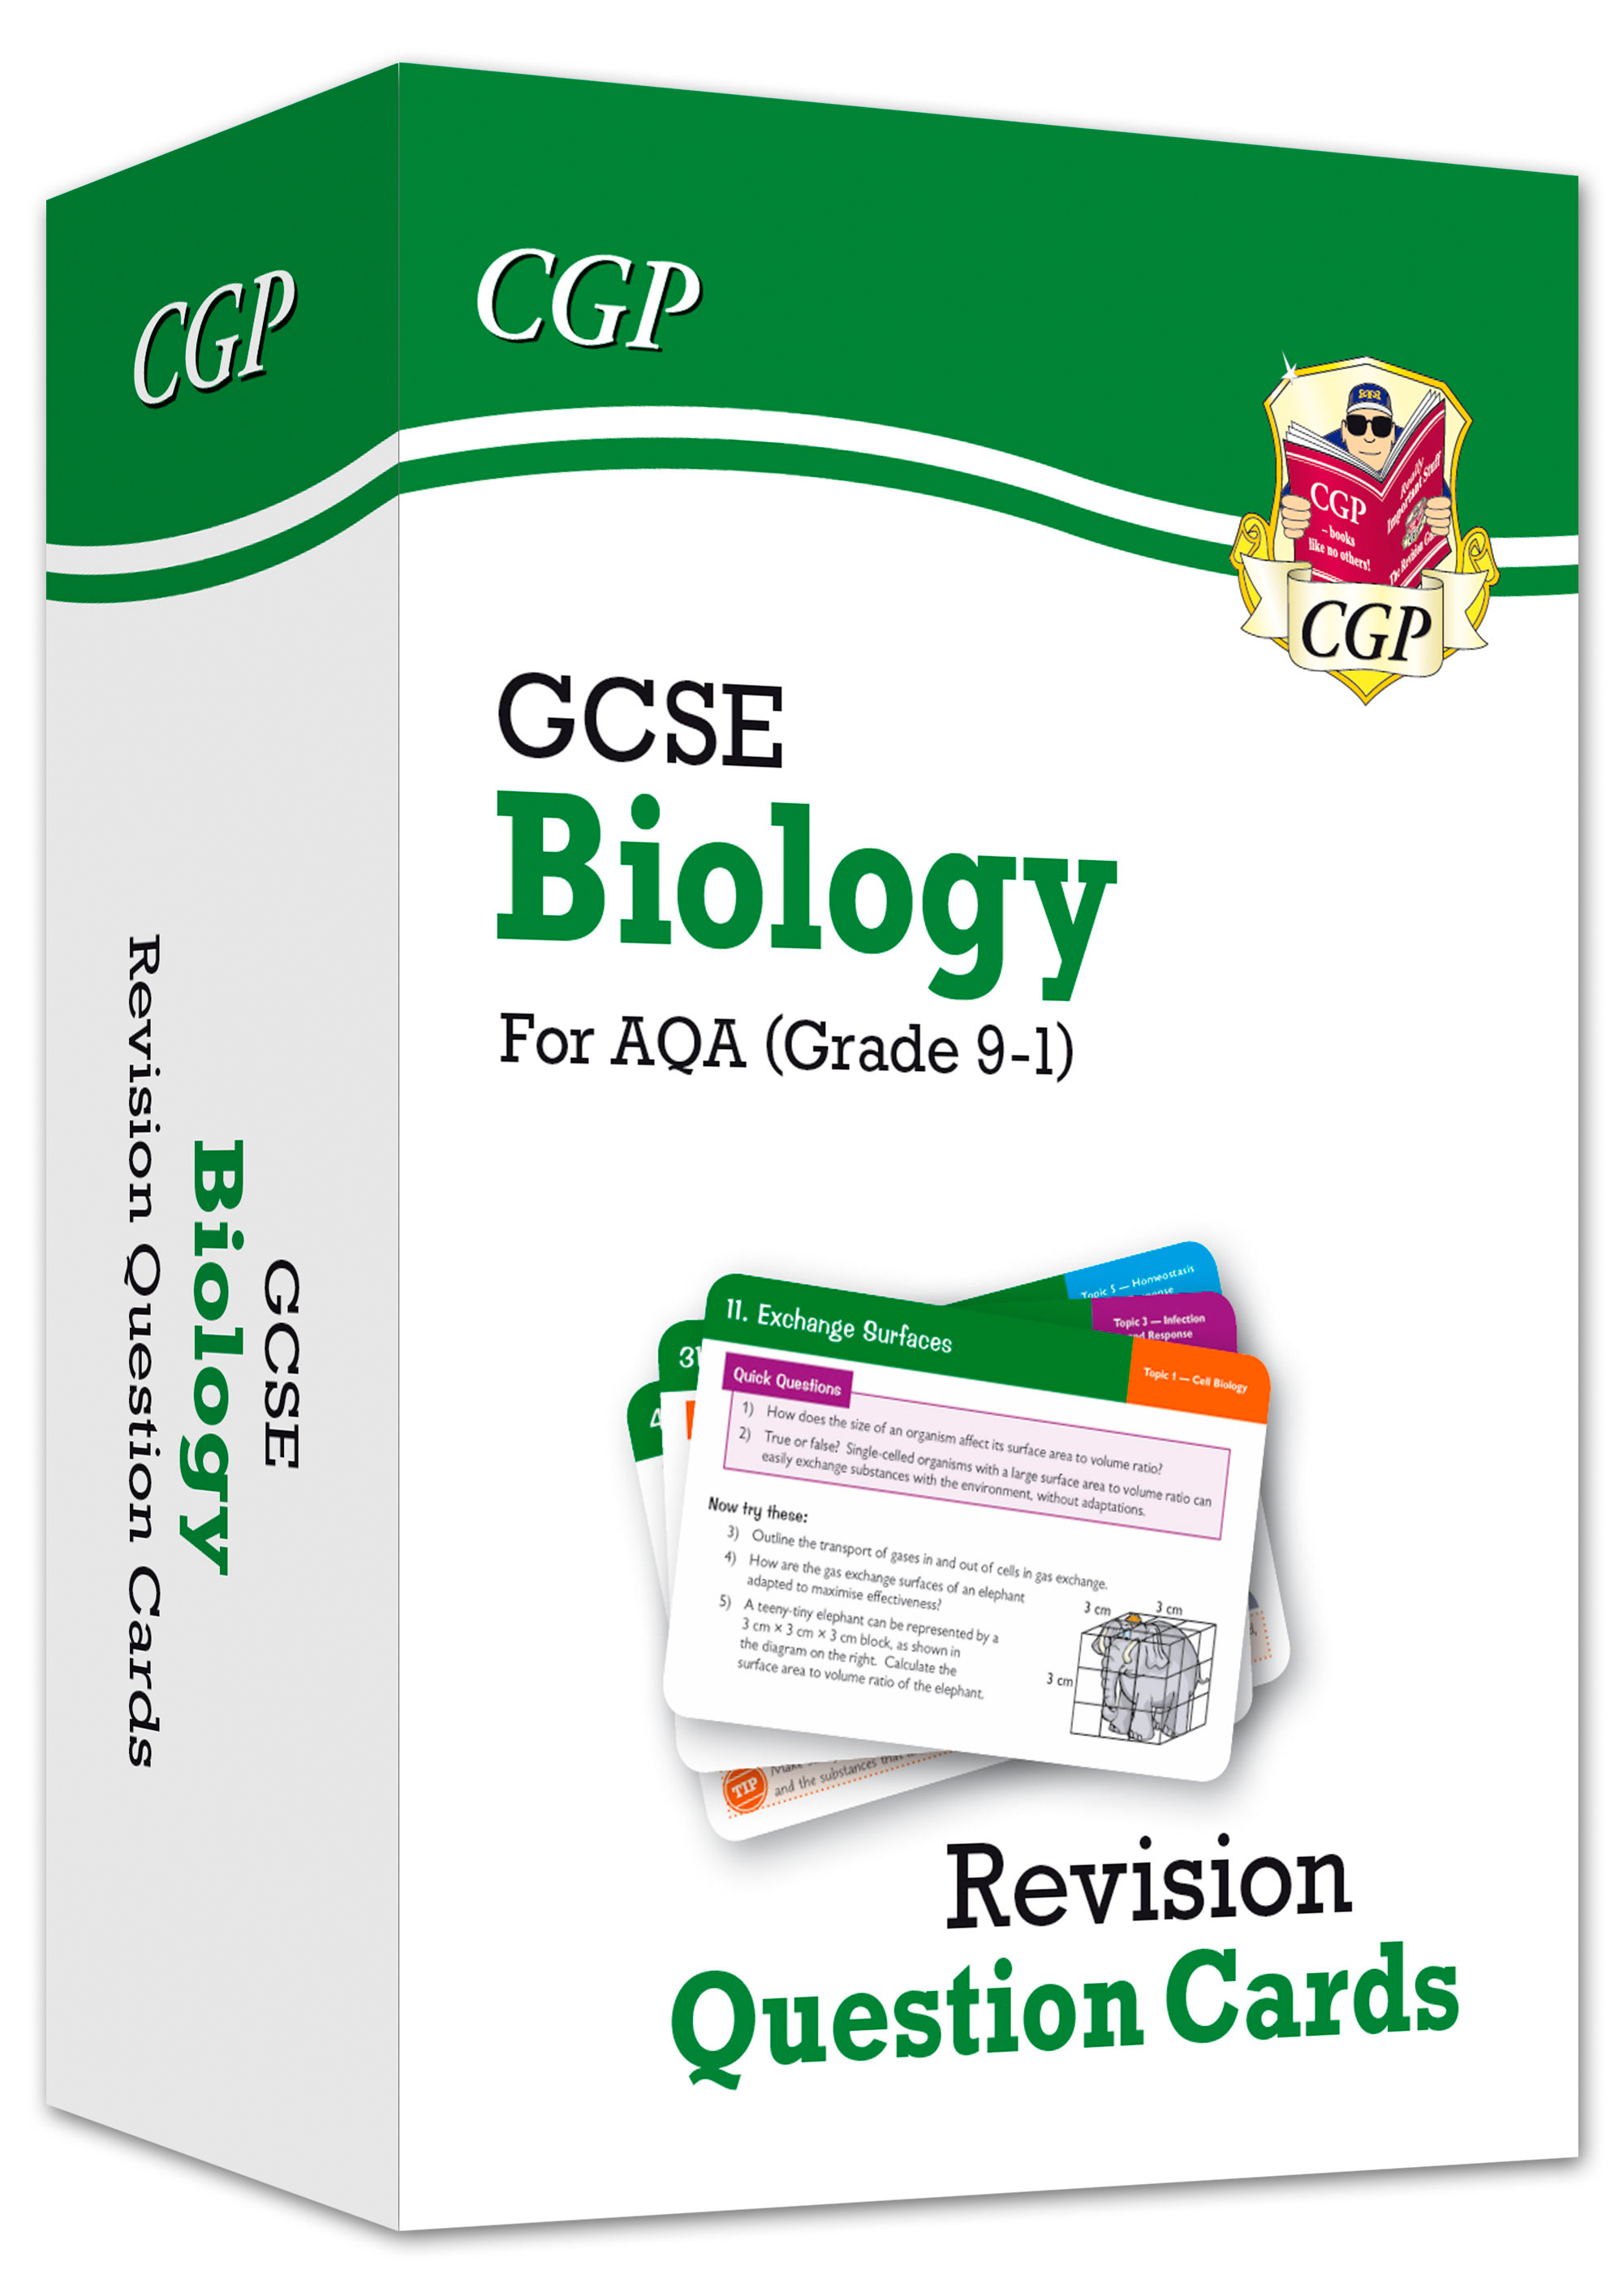 BAF41DK - New 9-1 GCSE Biology AQA Revision Question Cards